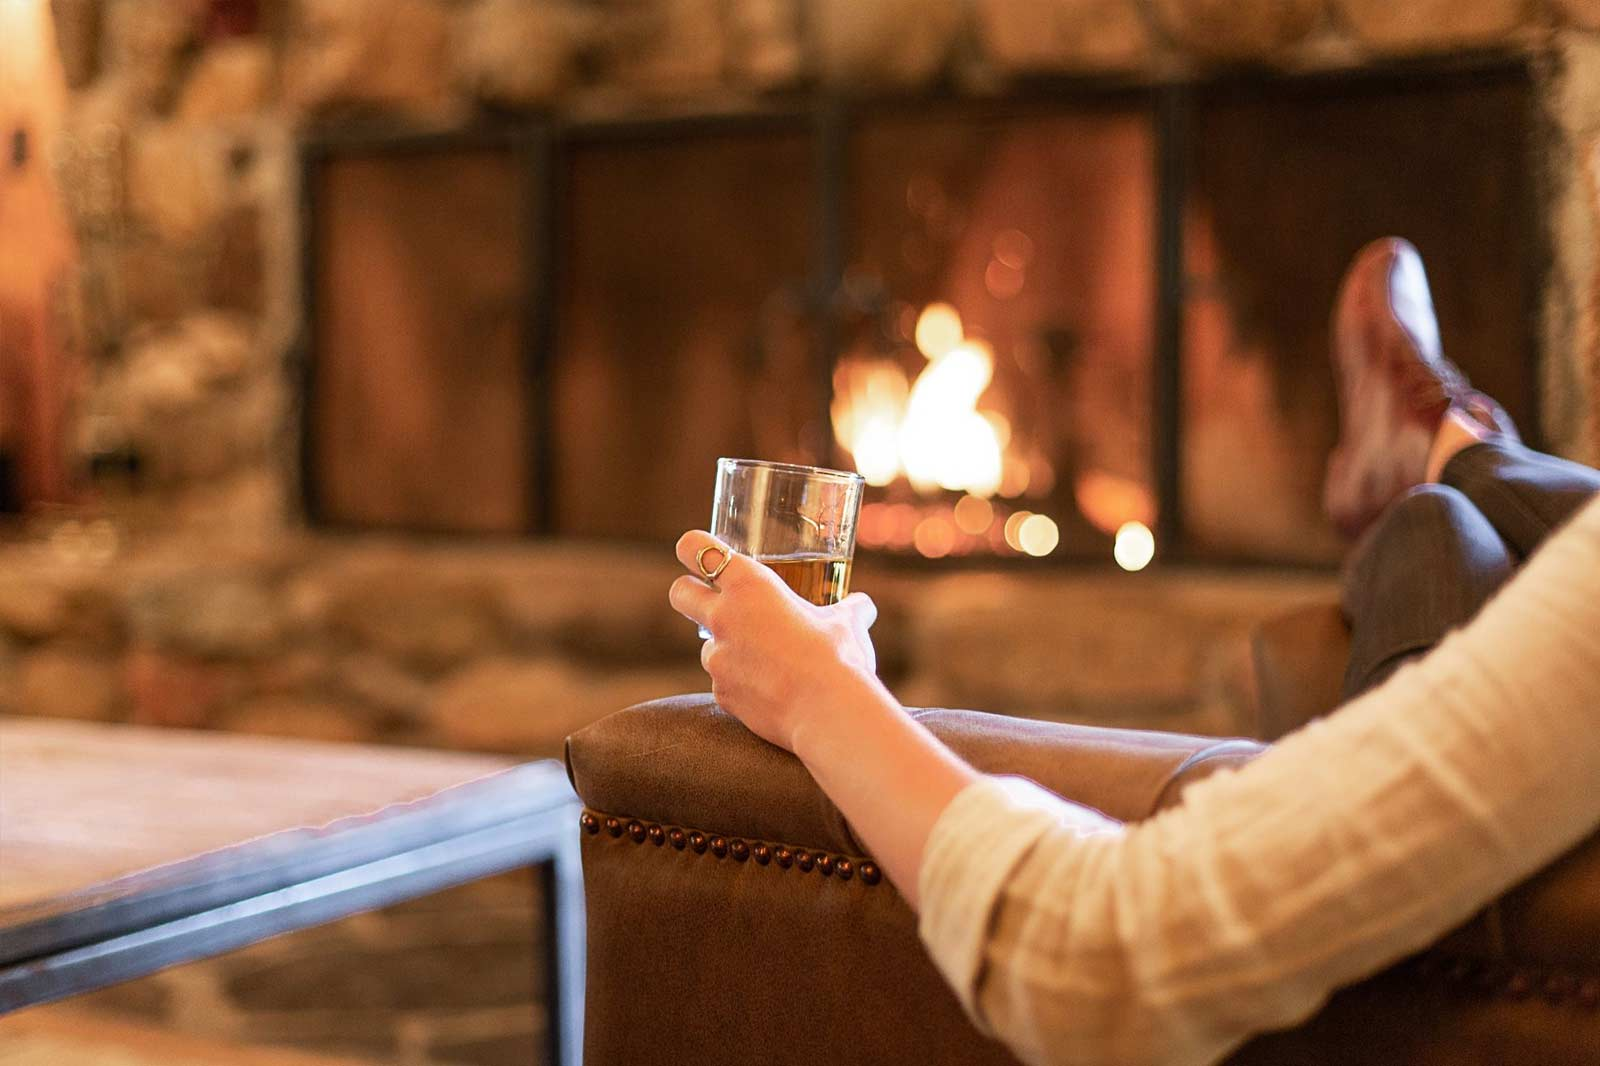 kick back and relax with a drink infront of a warm firepace